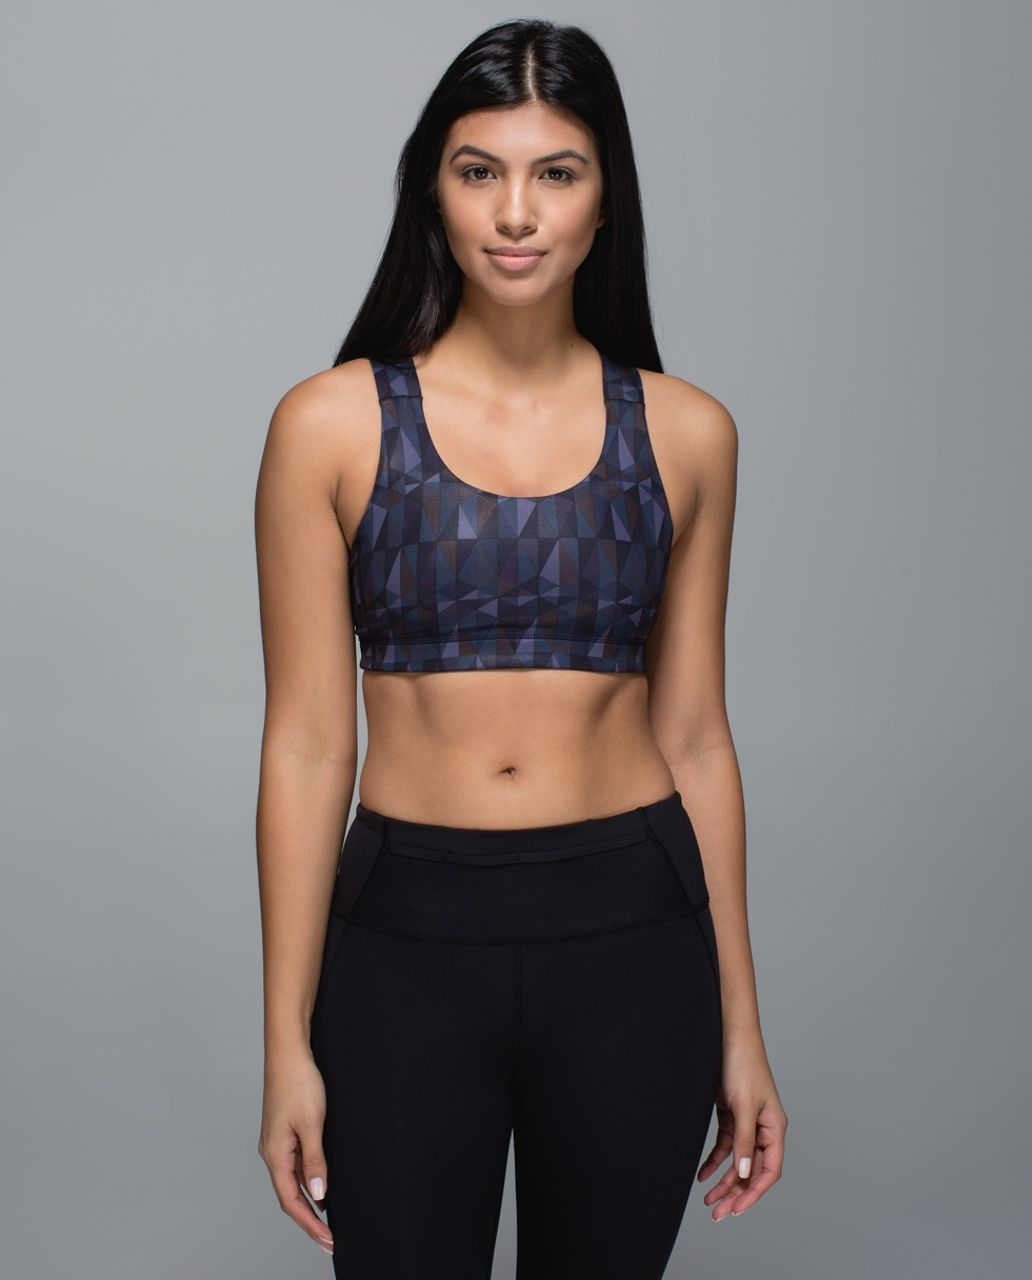 Lululemon All Sport Bra - Stained Glass Love Nightfall Black